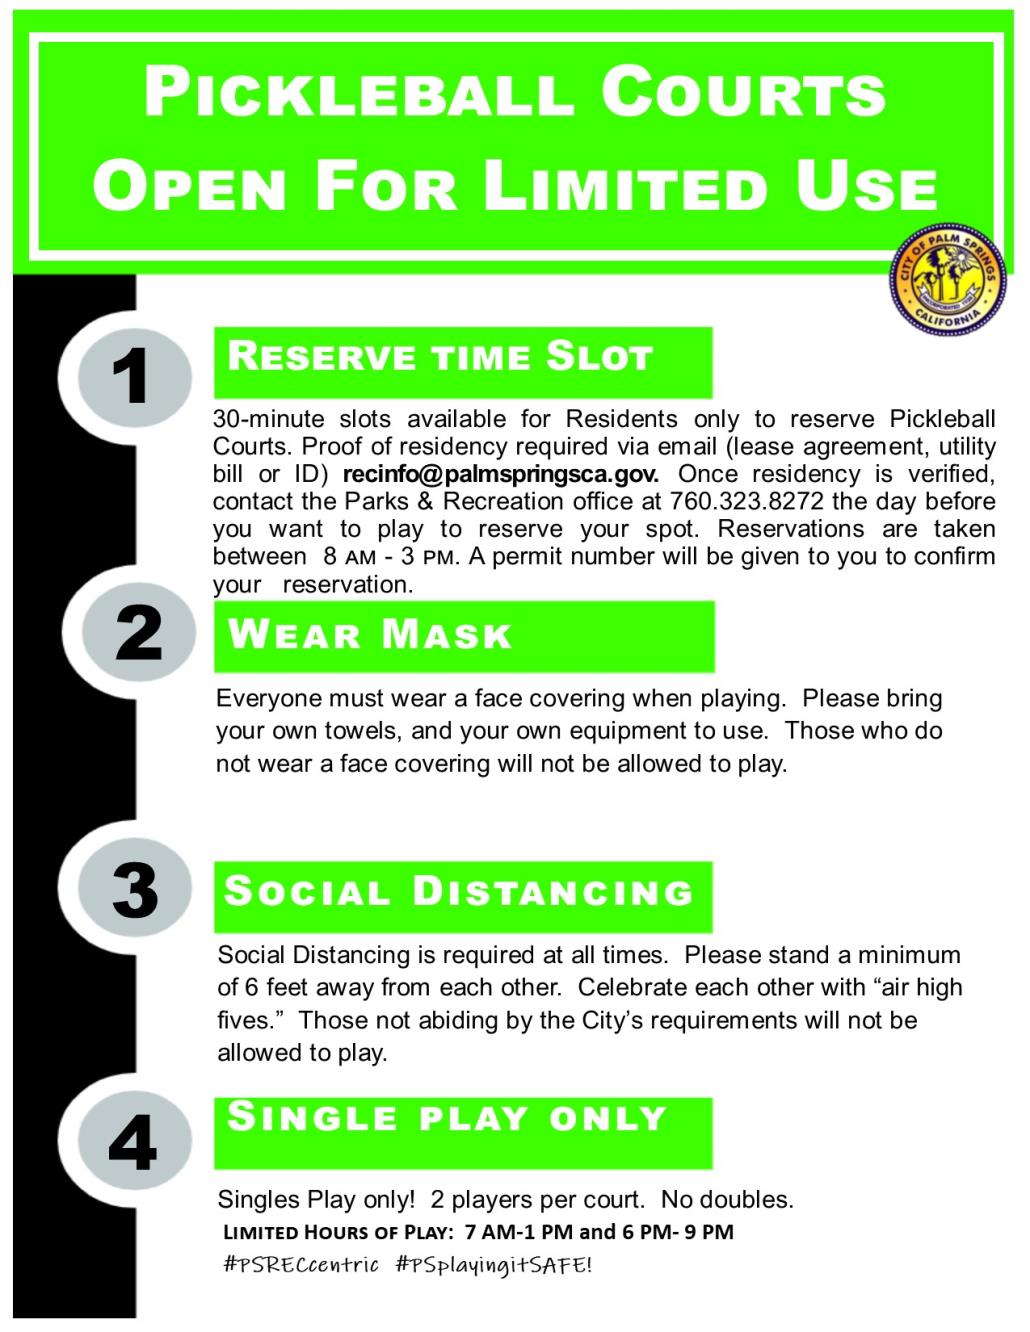 Re open Courts pickleball Guidelines